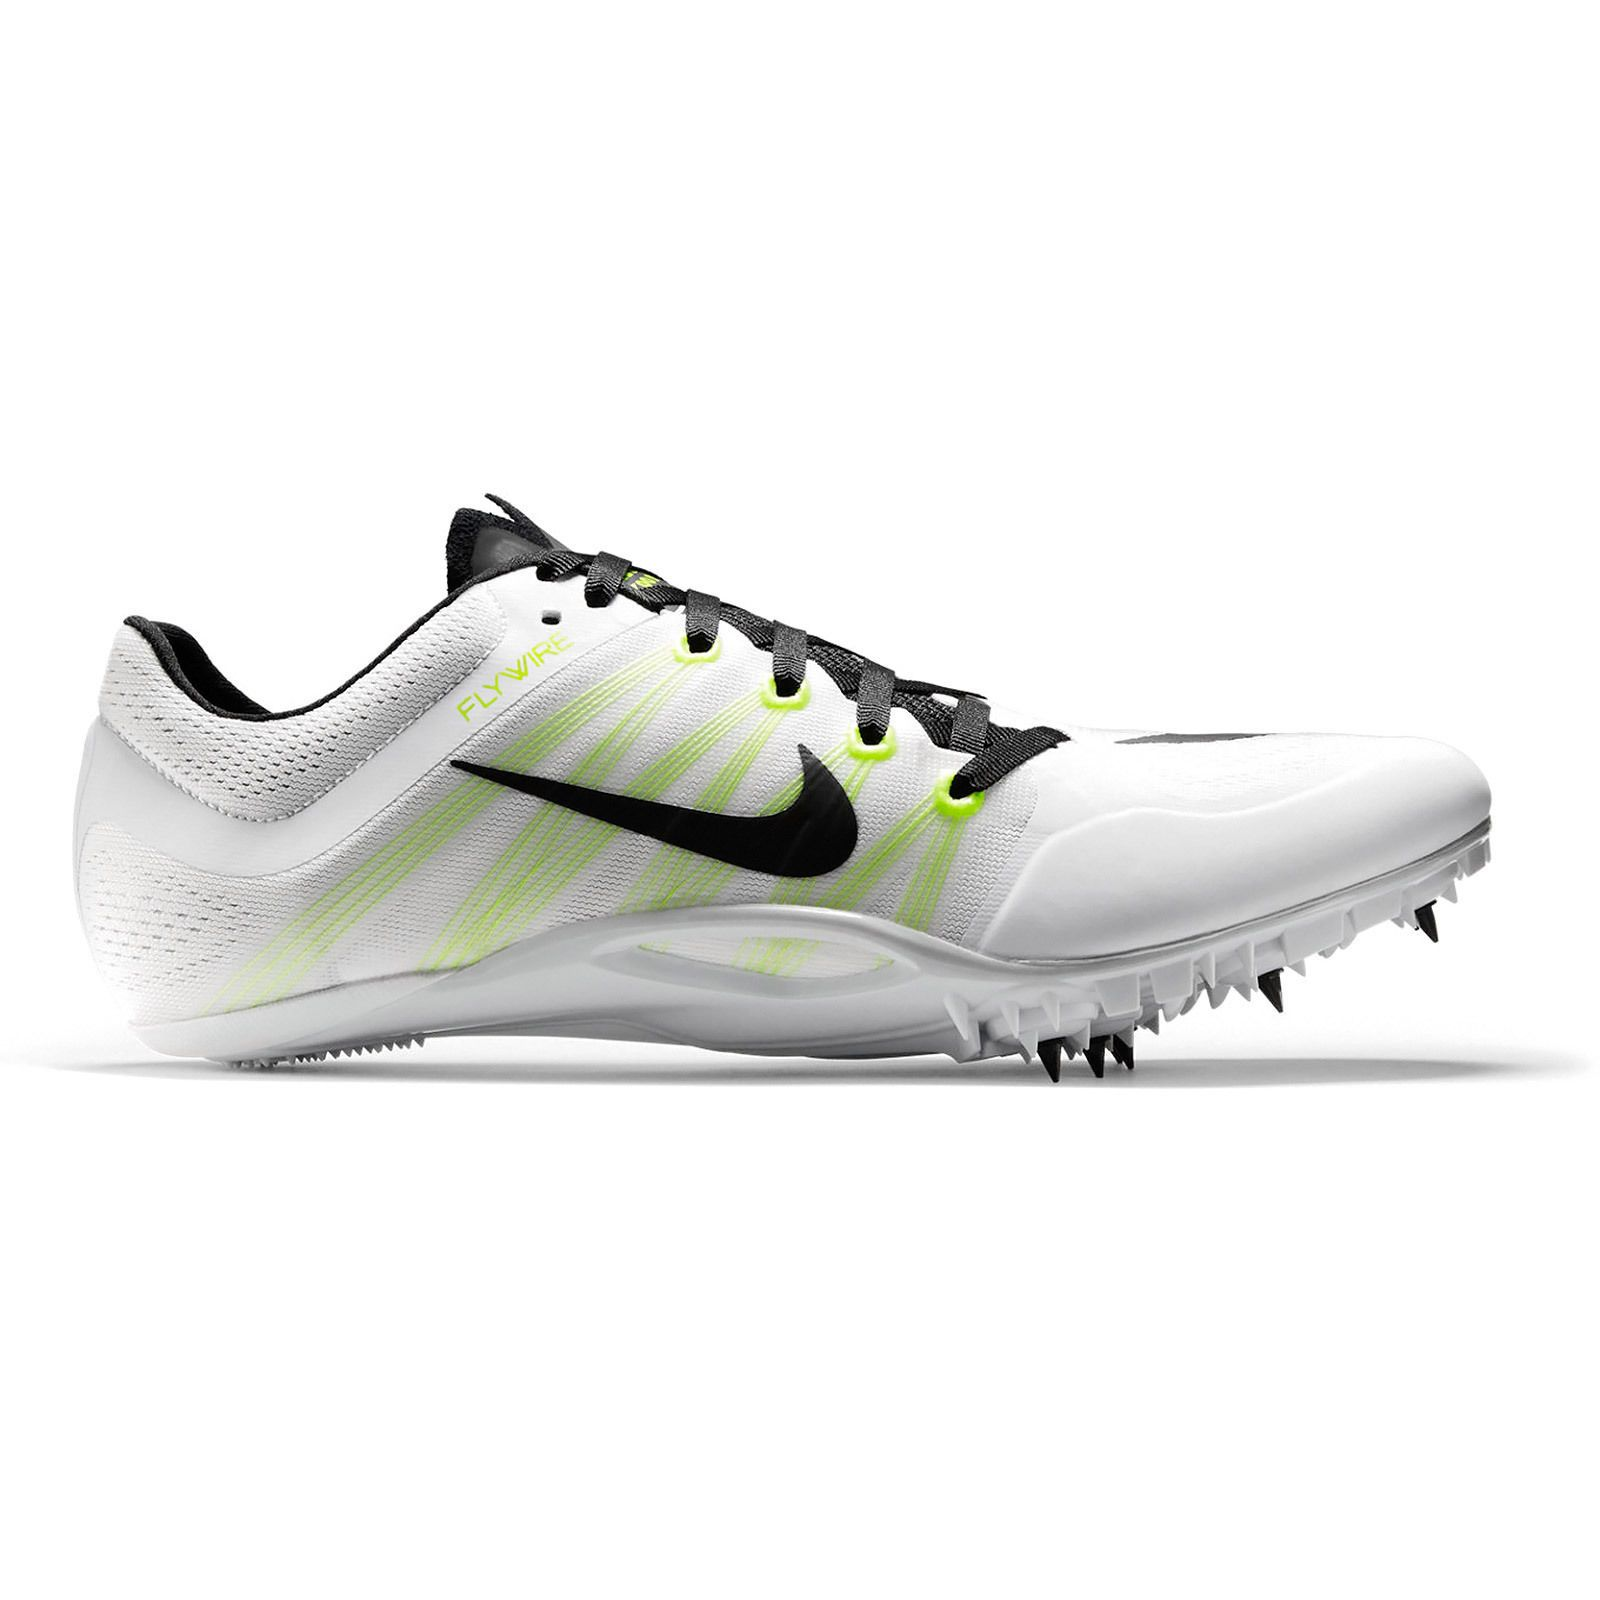 New Nike Zoom JA Fly 2 II Mens Track & Field Spikes Sprint Shoes : White